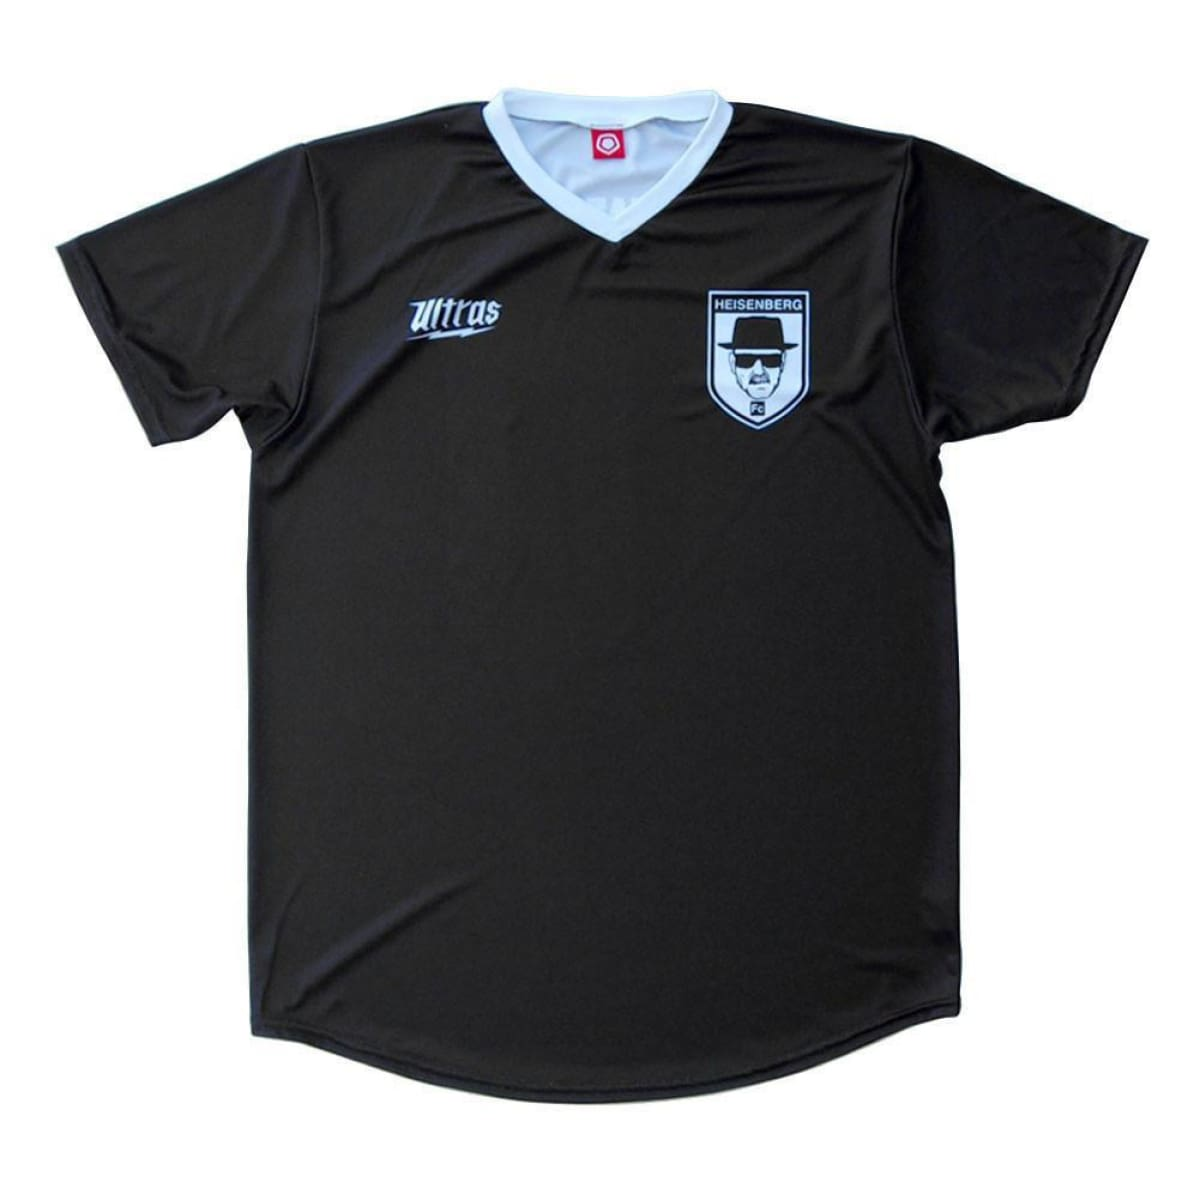 Breaking Bad Heisenberg FC Soccer Jersey - Black / Youth X-Small / No - Ultras Culture Soccer Jerseys